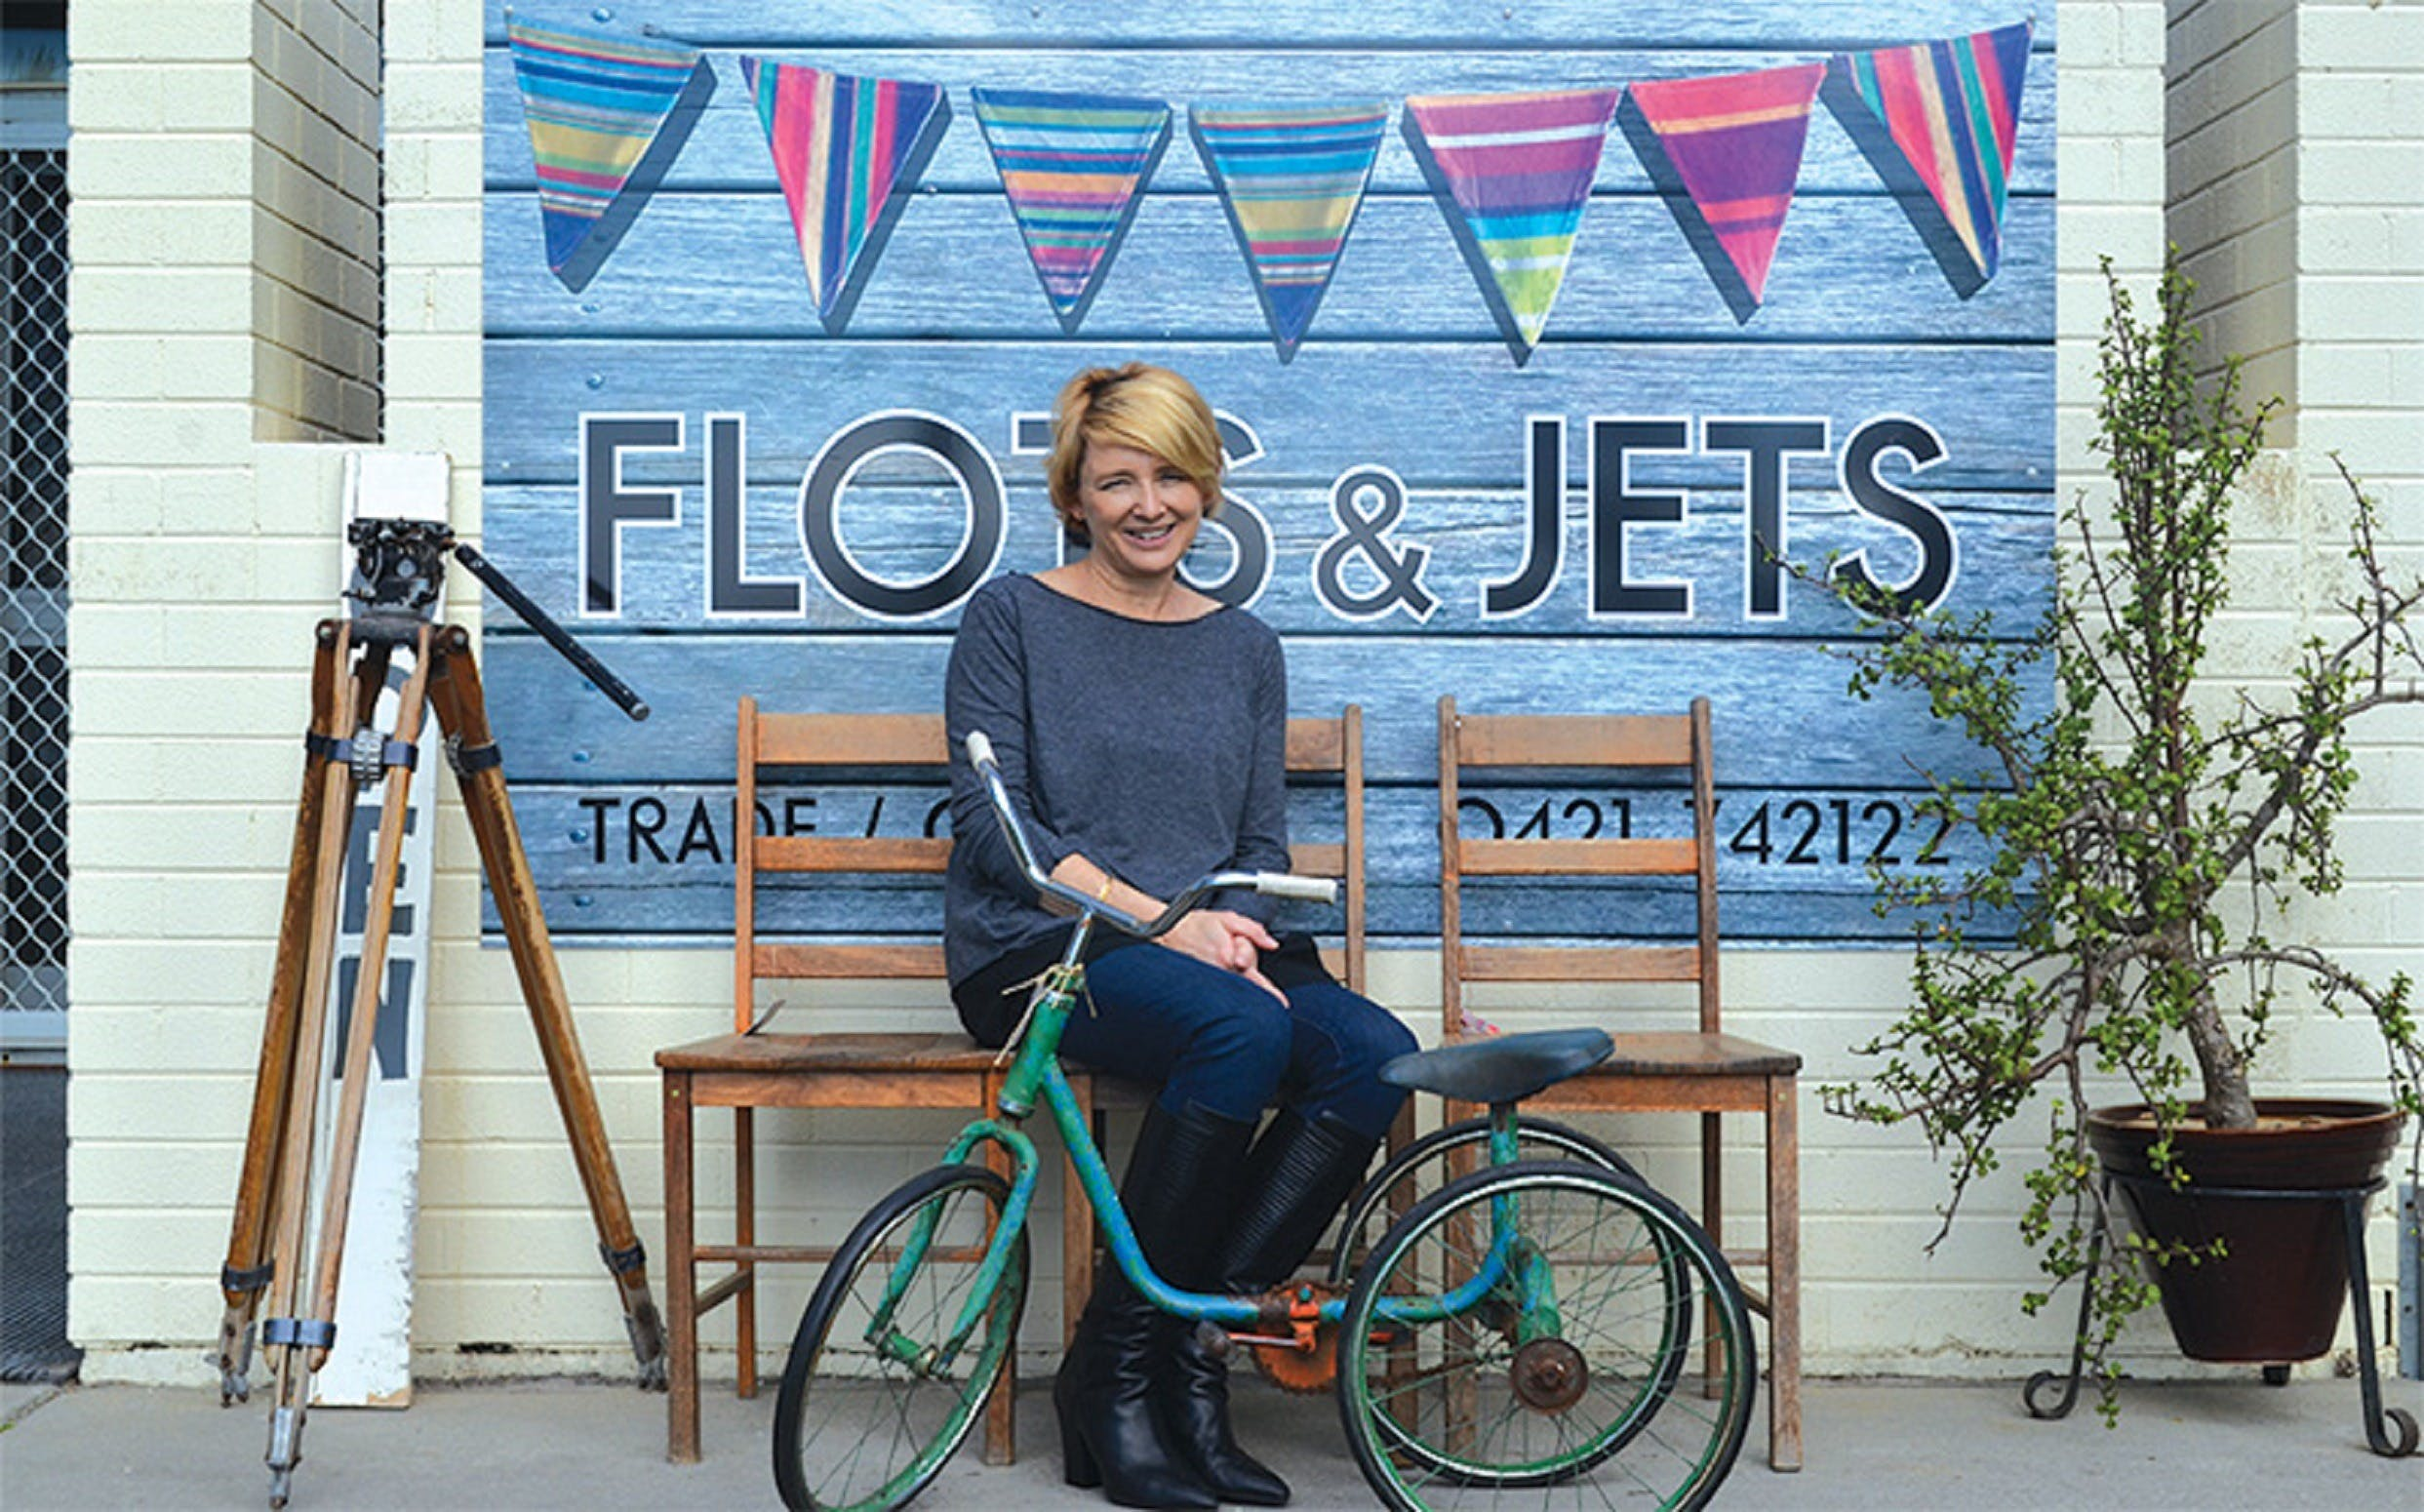 Flots and Jets - Accommodation BNB